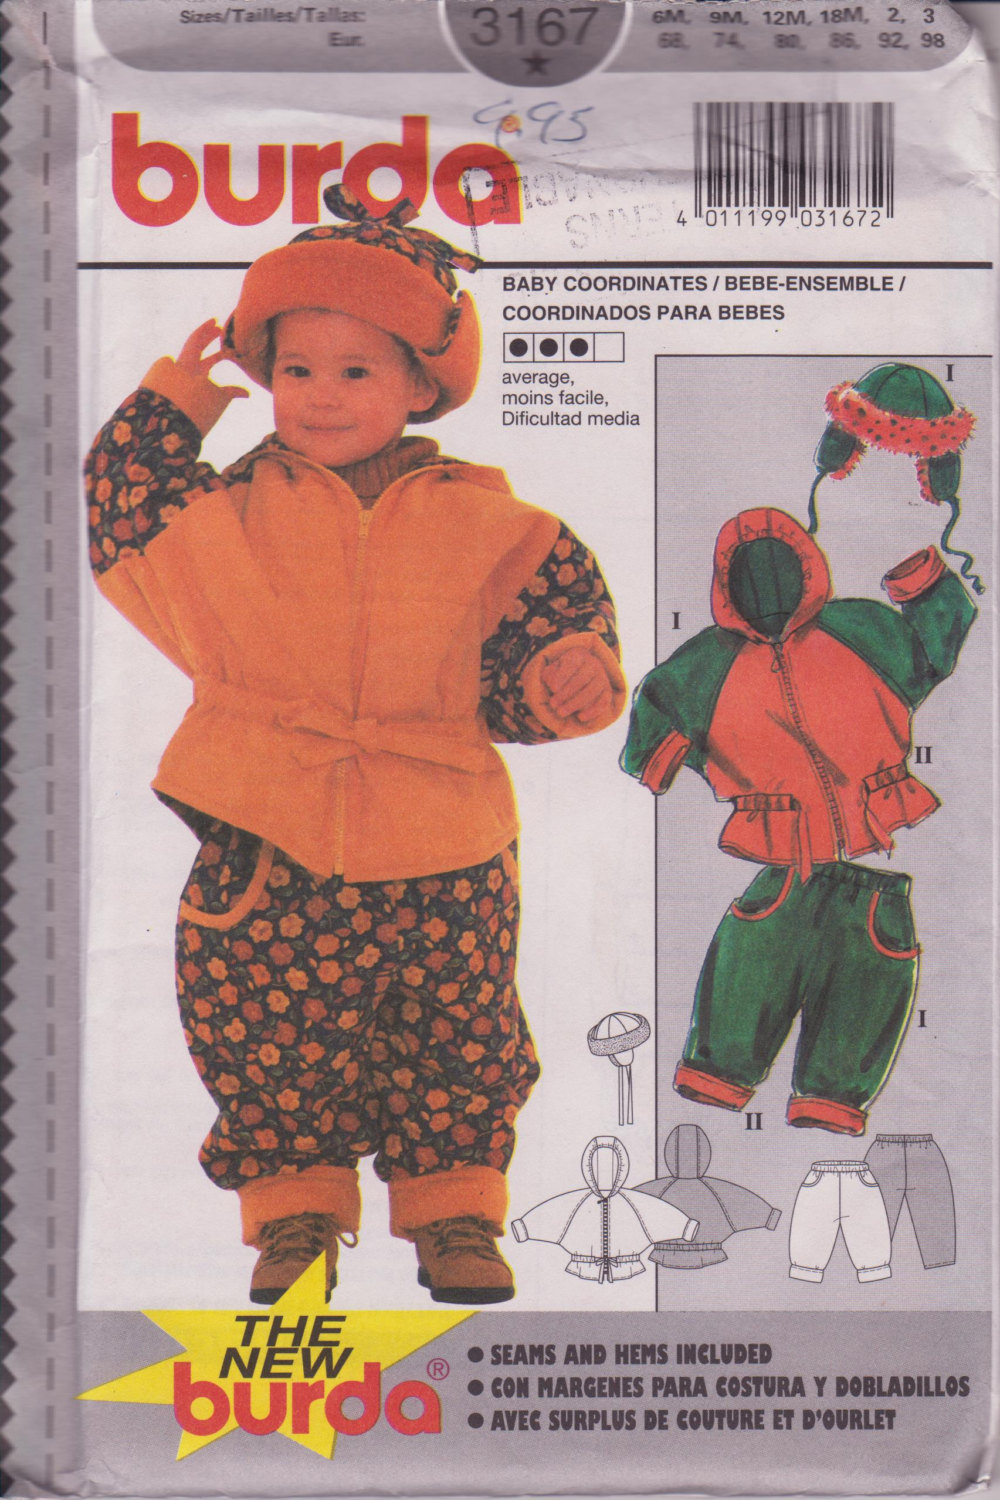 Burda 3167 Baby Coordinates Sizes 6 months to 3 years Eur 68-98 Jacket with Hat